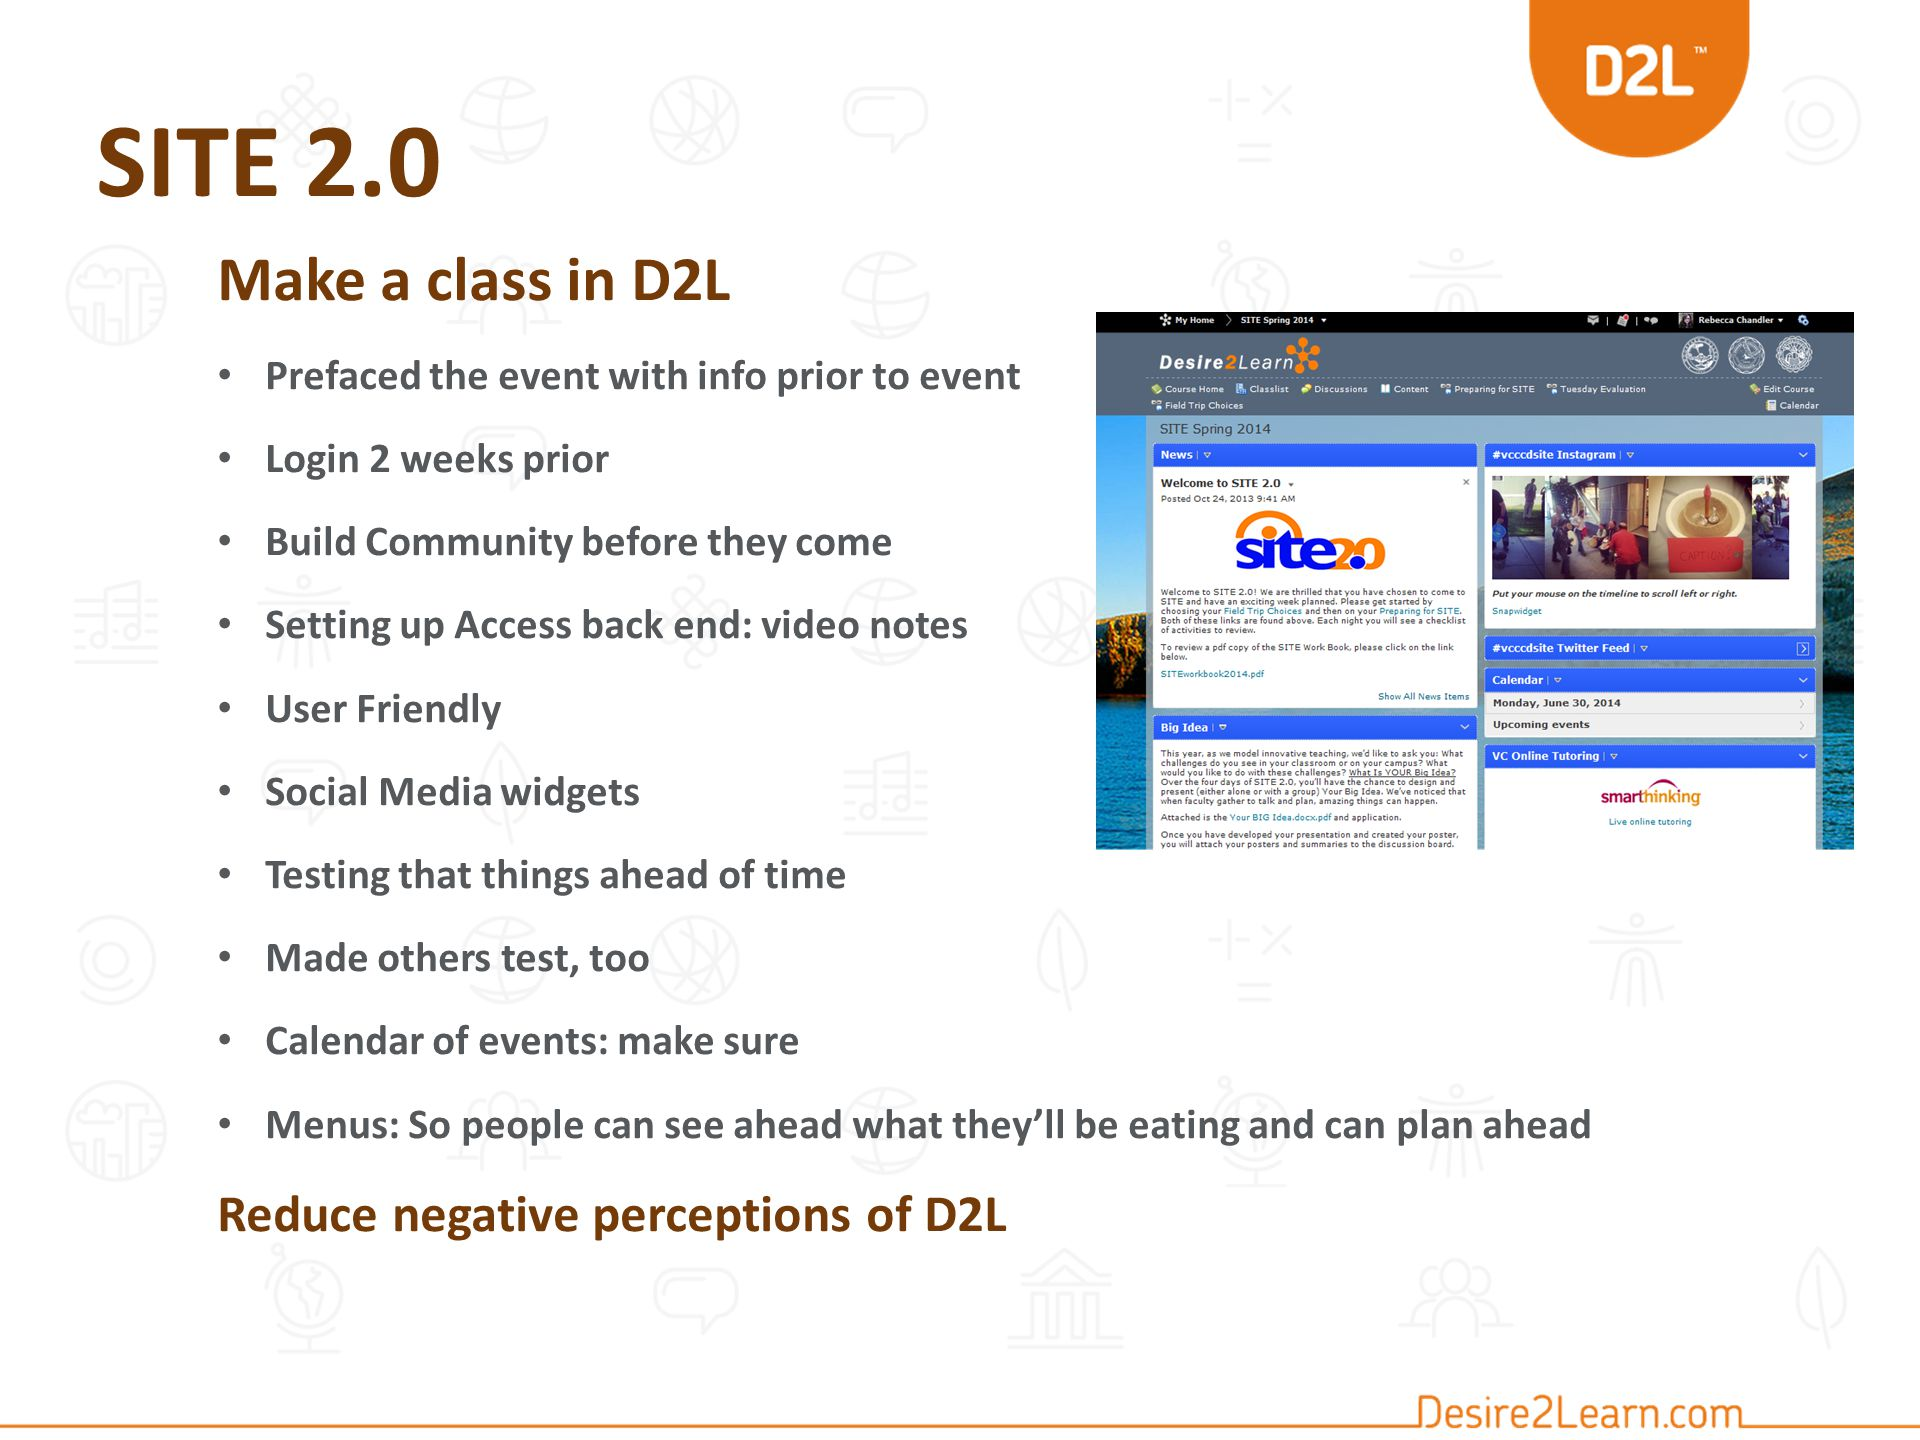 SITE 2.0 Make a class in D2L Prefaced the event with info prior to event Login 2 weeks prior Build Community before they come Setting up Access back end: video notes User Friendly Social Media widgets Testing that things ahead of time Made others test, too Calendar of events: make sure Menus: So people can see ahead what they'll be eating and can plan ahead Reduce negative perceptions of D2L